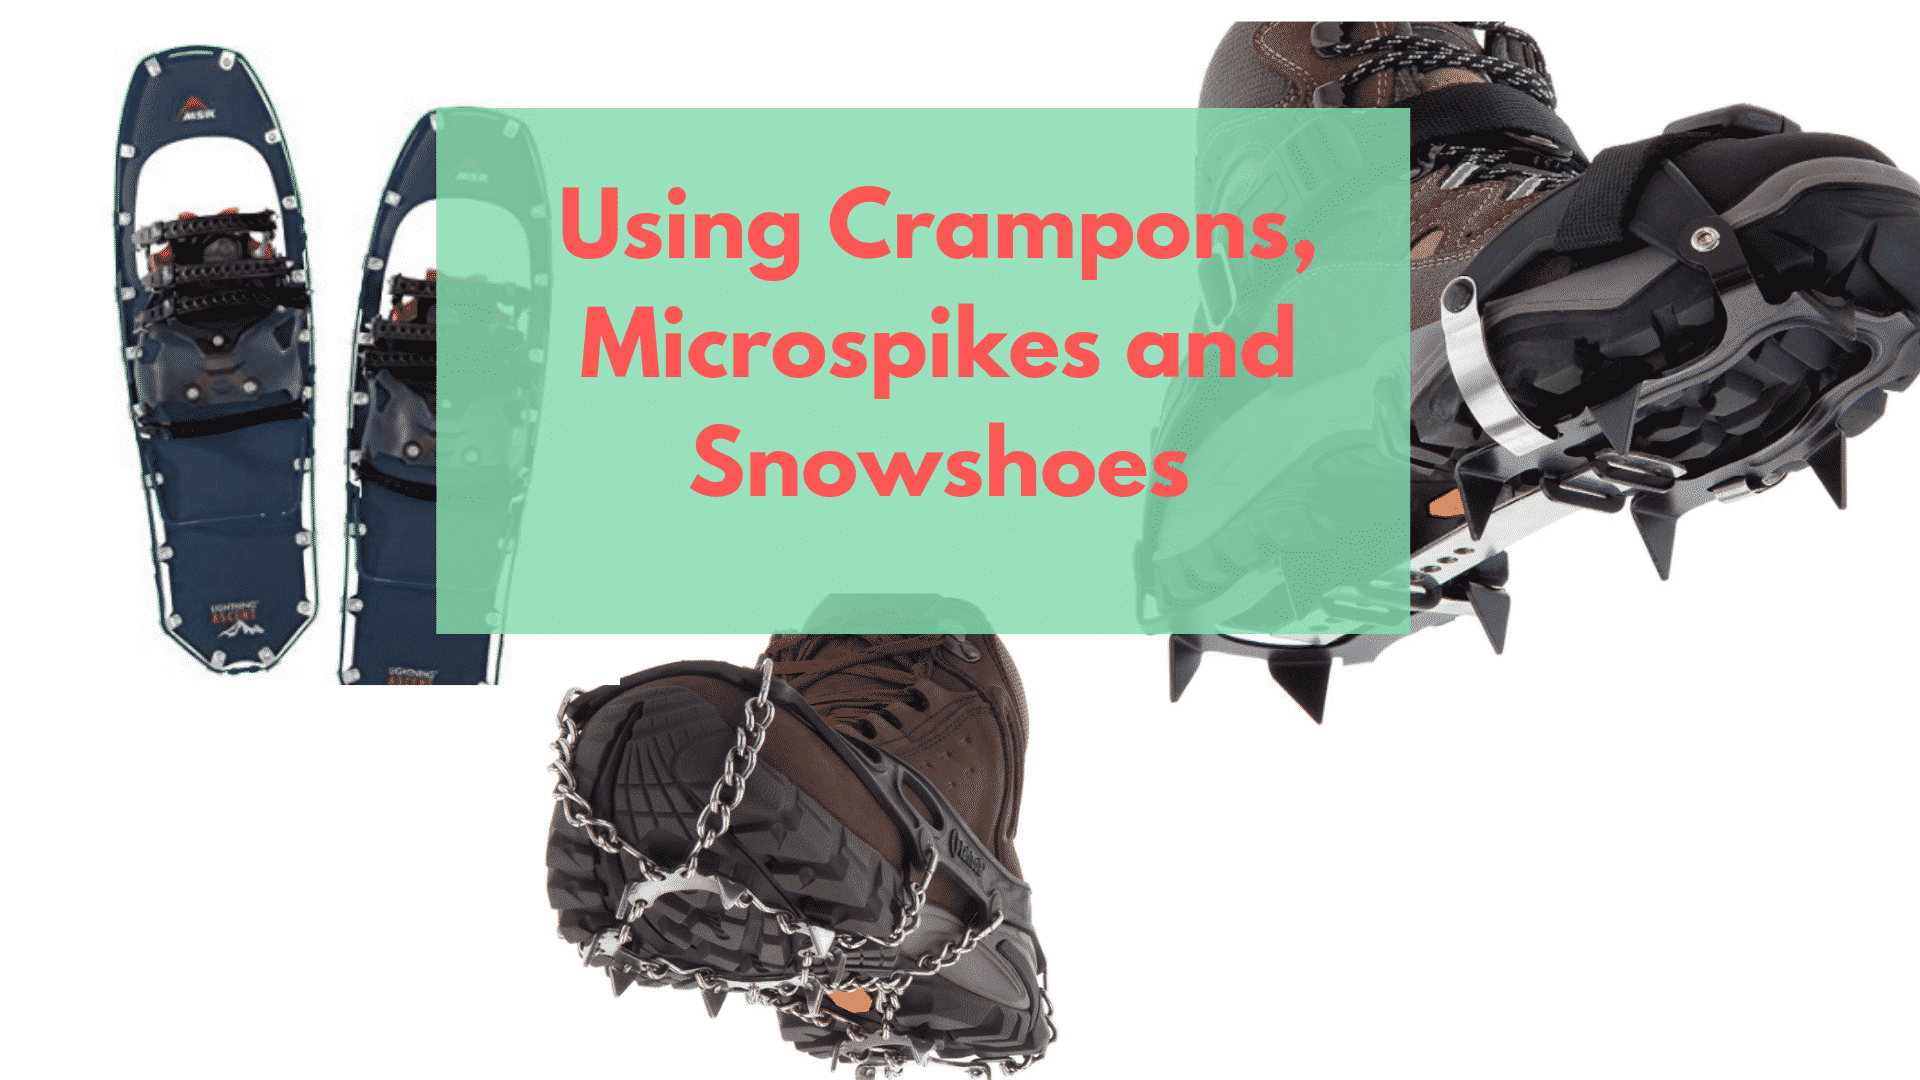 When to Use Crampons Microspikes and Snowshoes